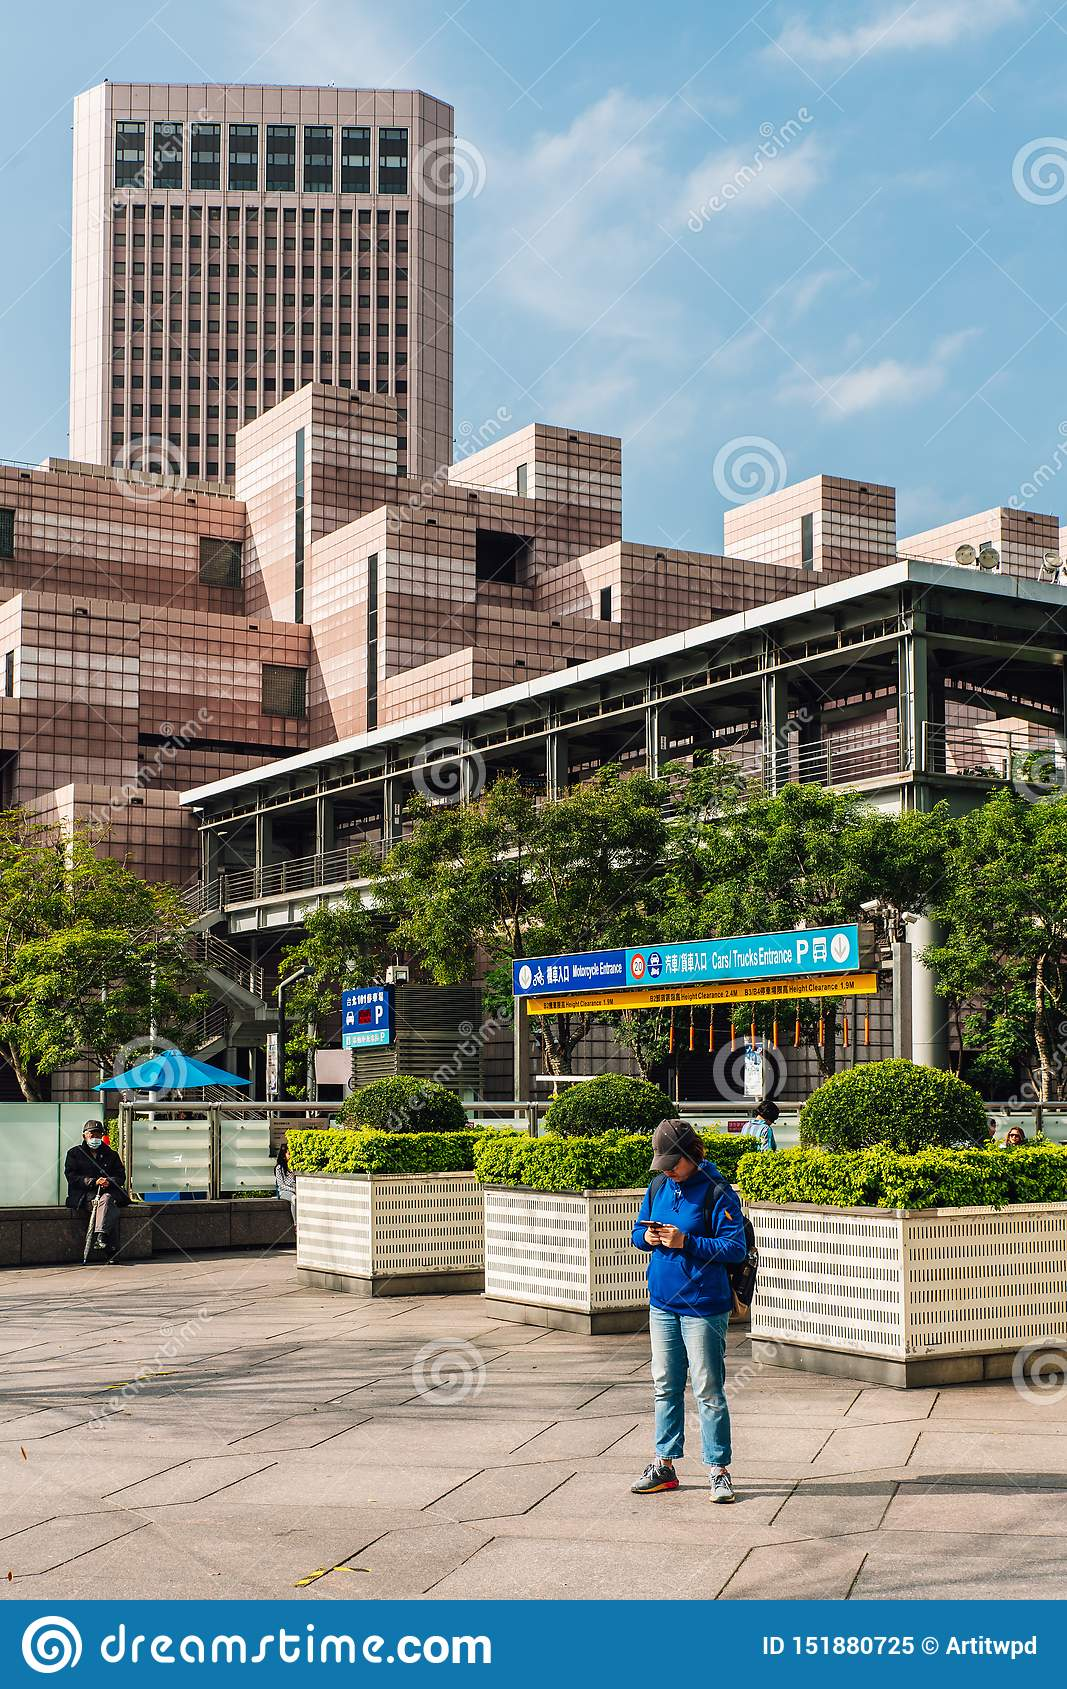 Building of Taipei World Trade Center Post Office. Decorated with white and light red color tiles with tourist standing.